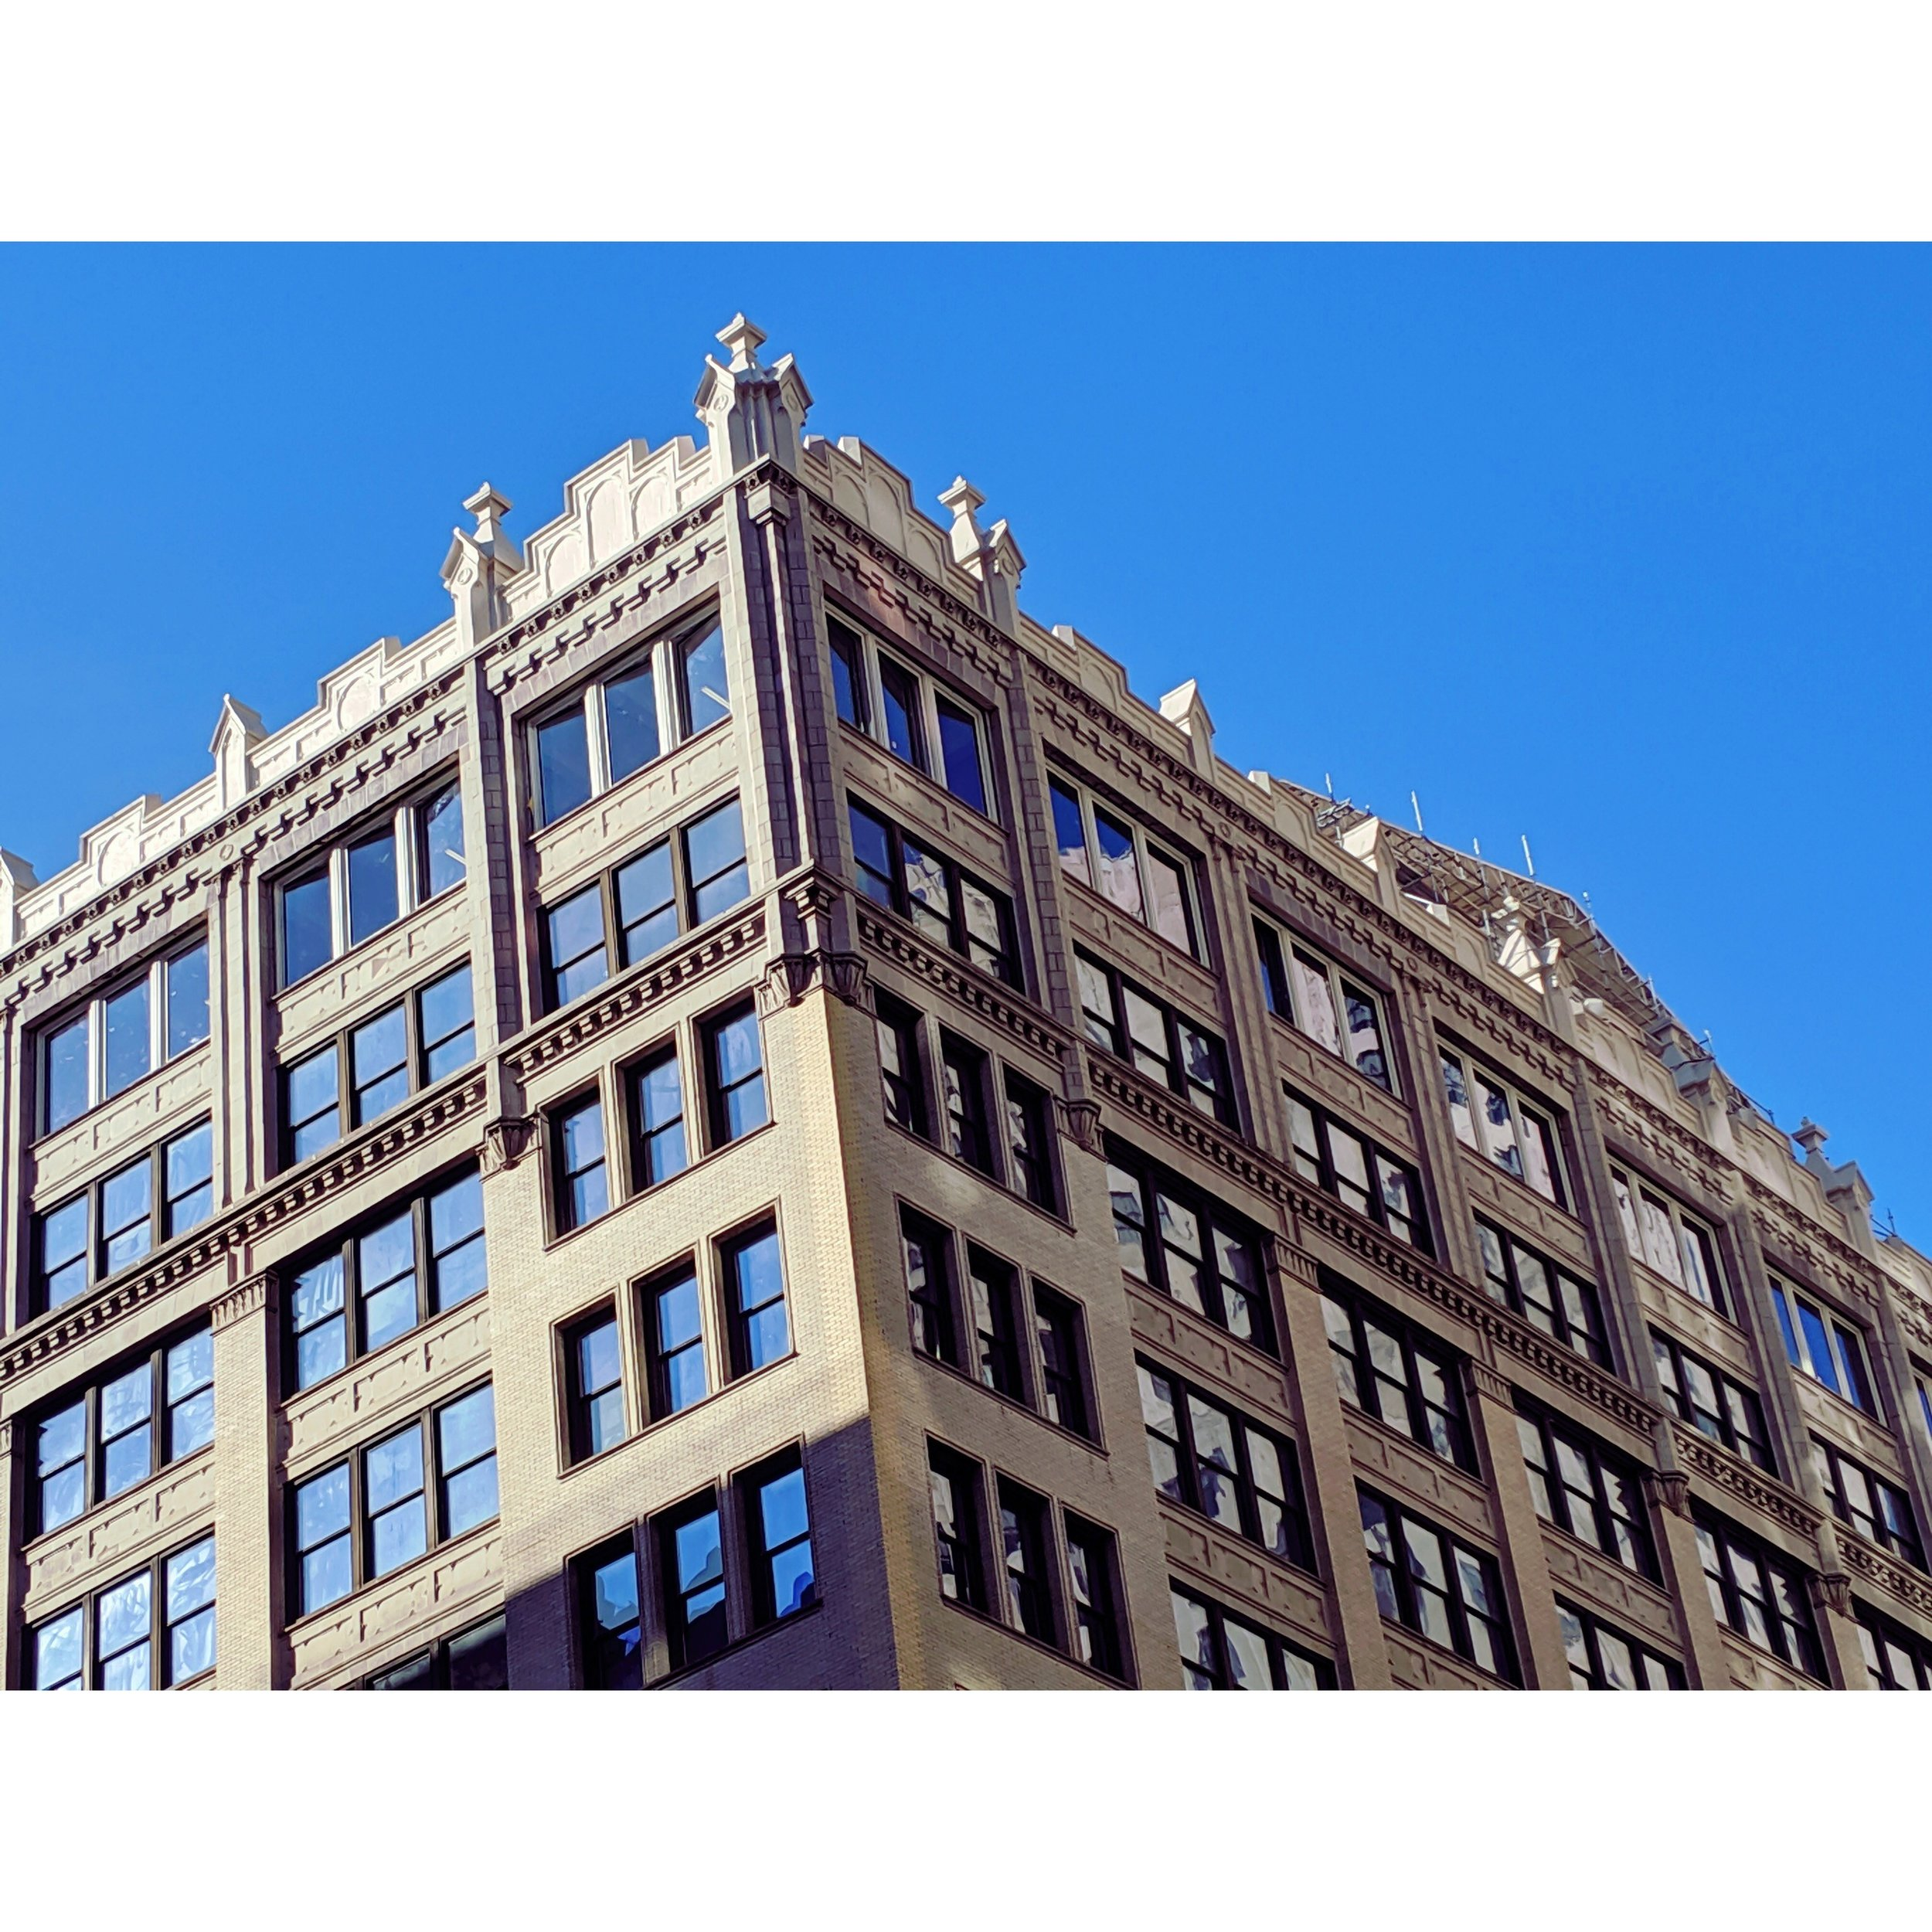 Top Floor of 345 PAS Complete - July 17, 2019Skyline Windows is manufacturing & installing Series 500 Casements throughout the recently redeveloped building on Park Avenue South.